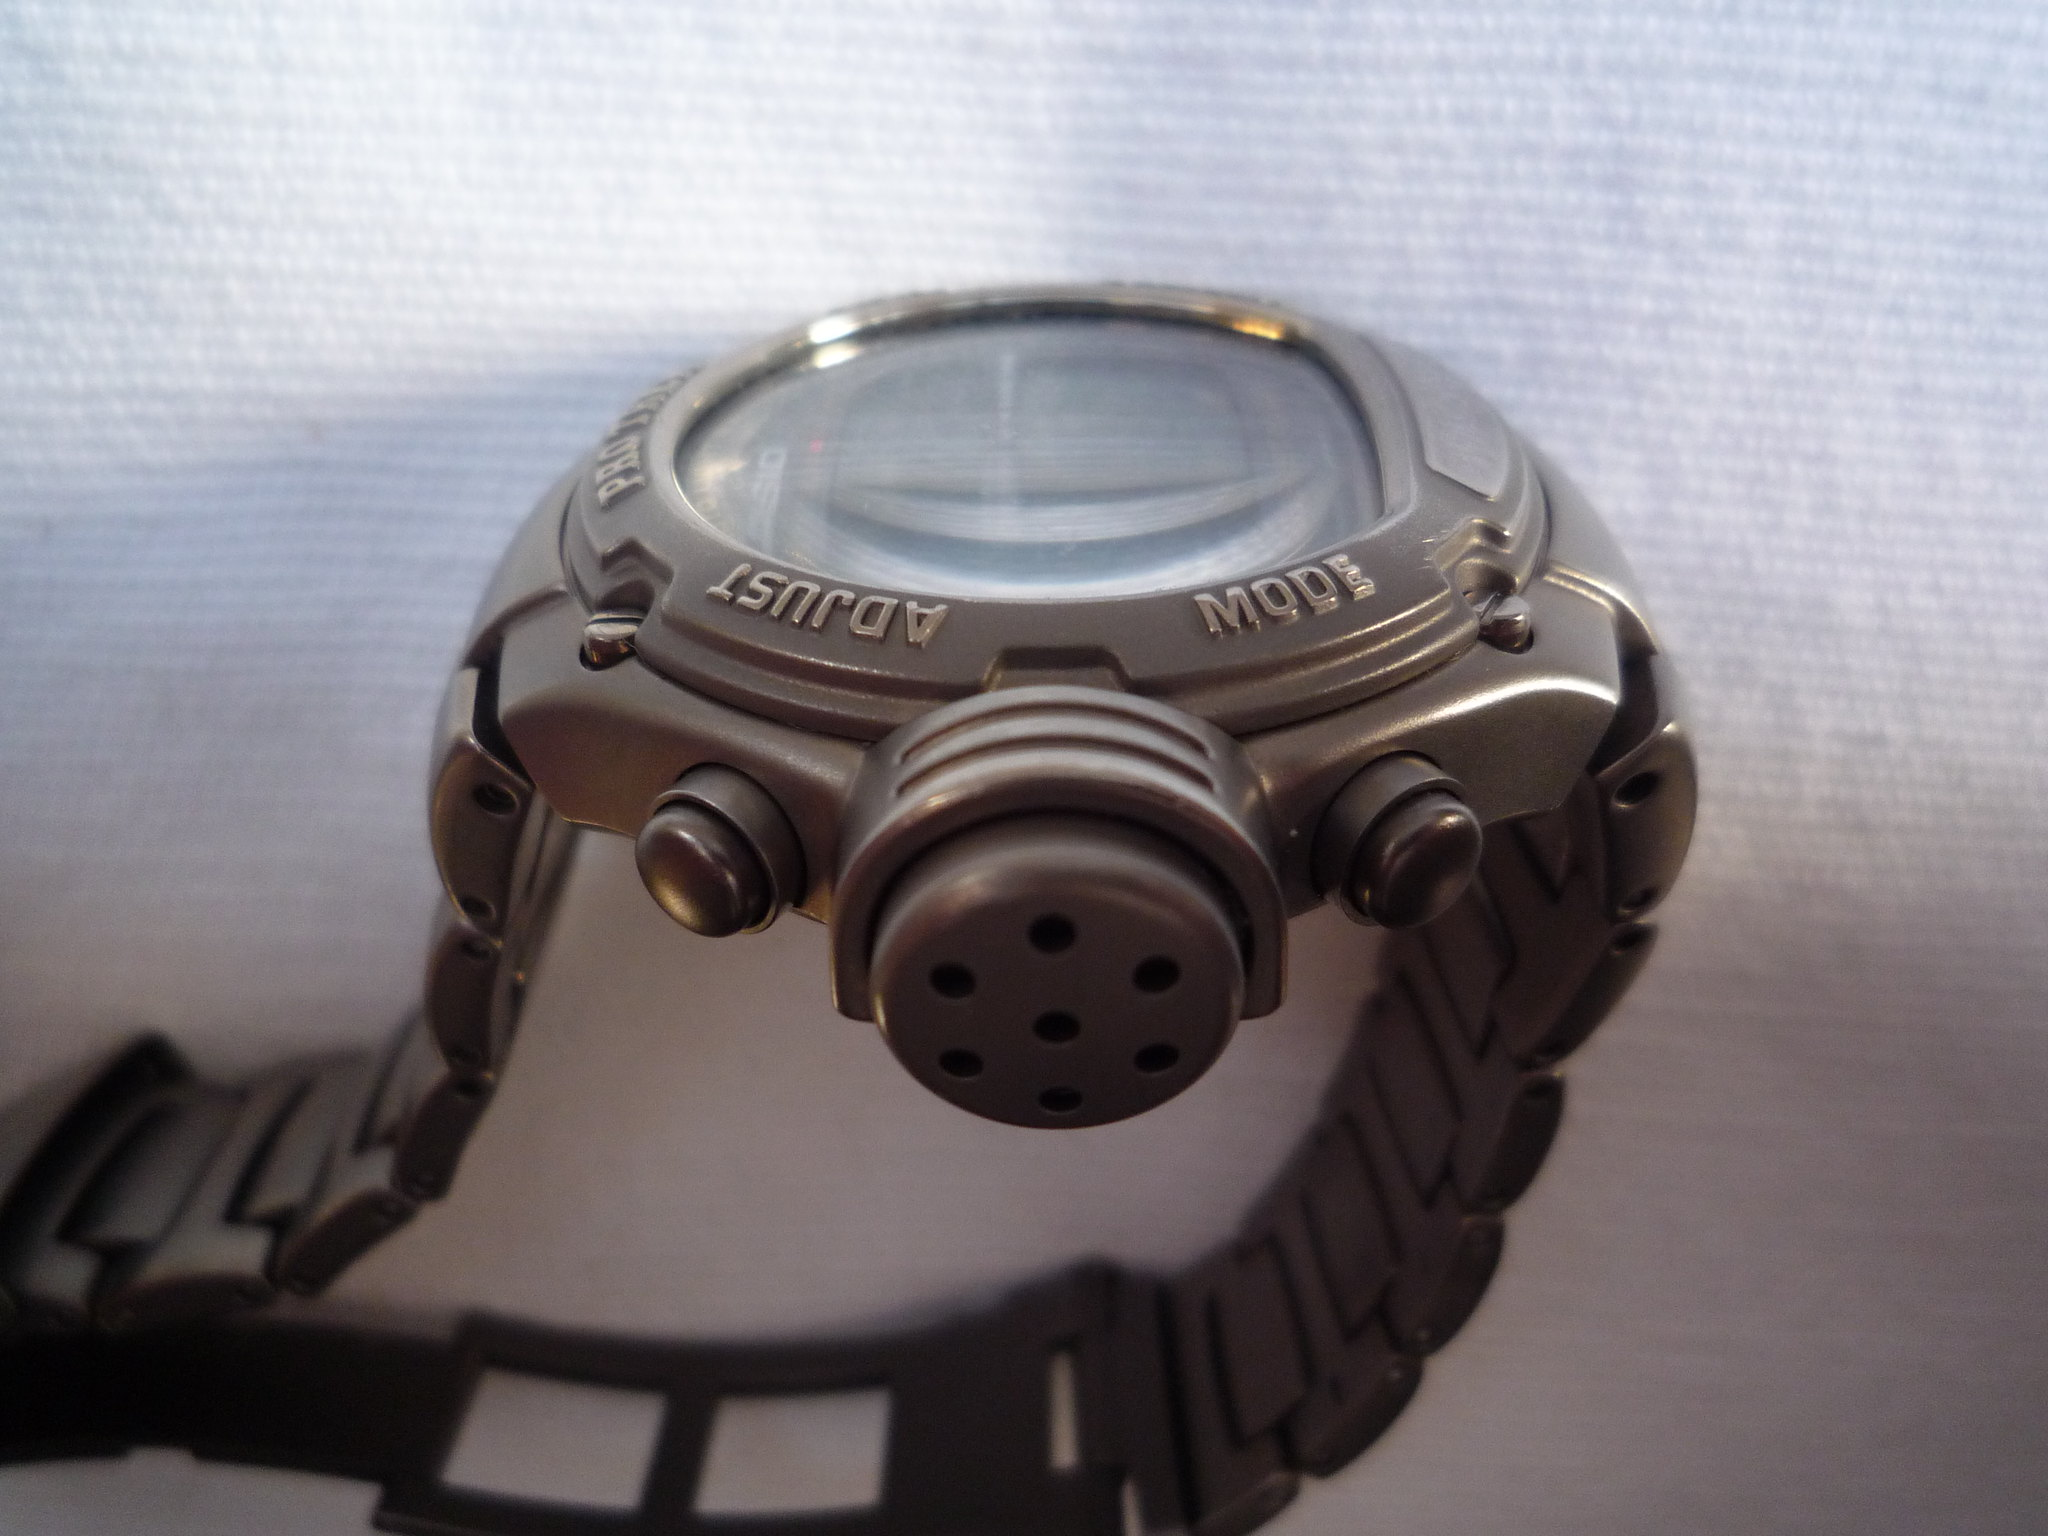 a watches navigation bl trackers gps equipment watch garmin forerunner abc blacks activity